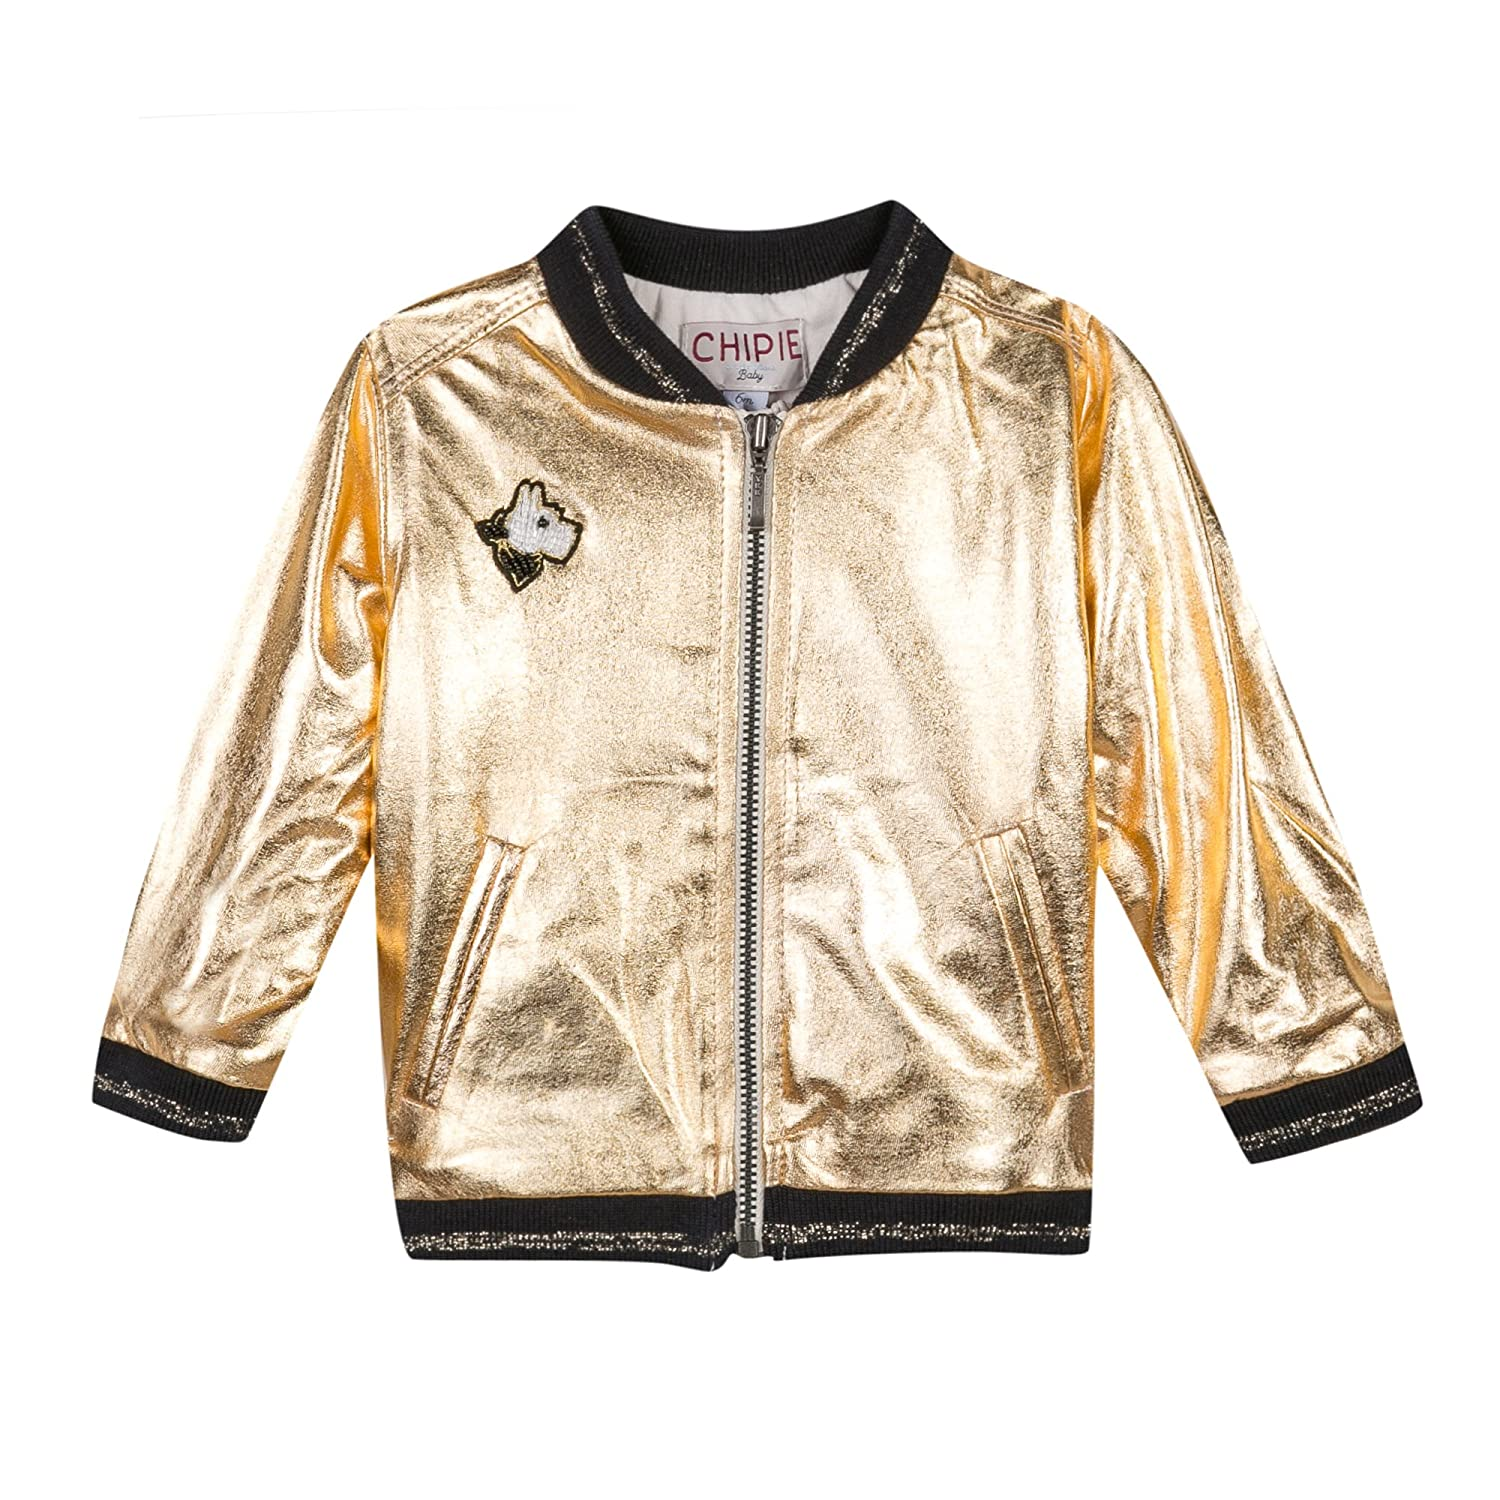 CHIPIE Baby Girls' Esmeralda Sports Jacket Gold (Or 74) 9-12 (Size: 9 Months) 8K17030